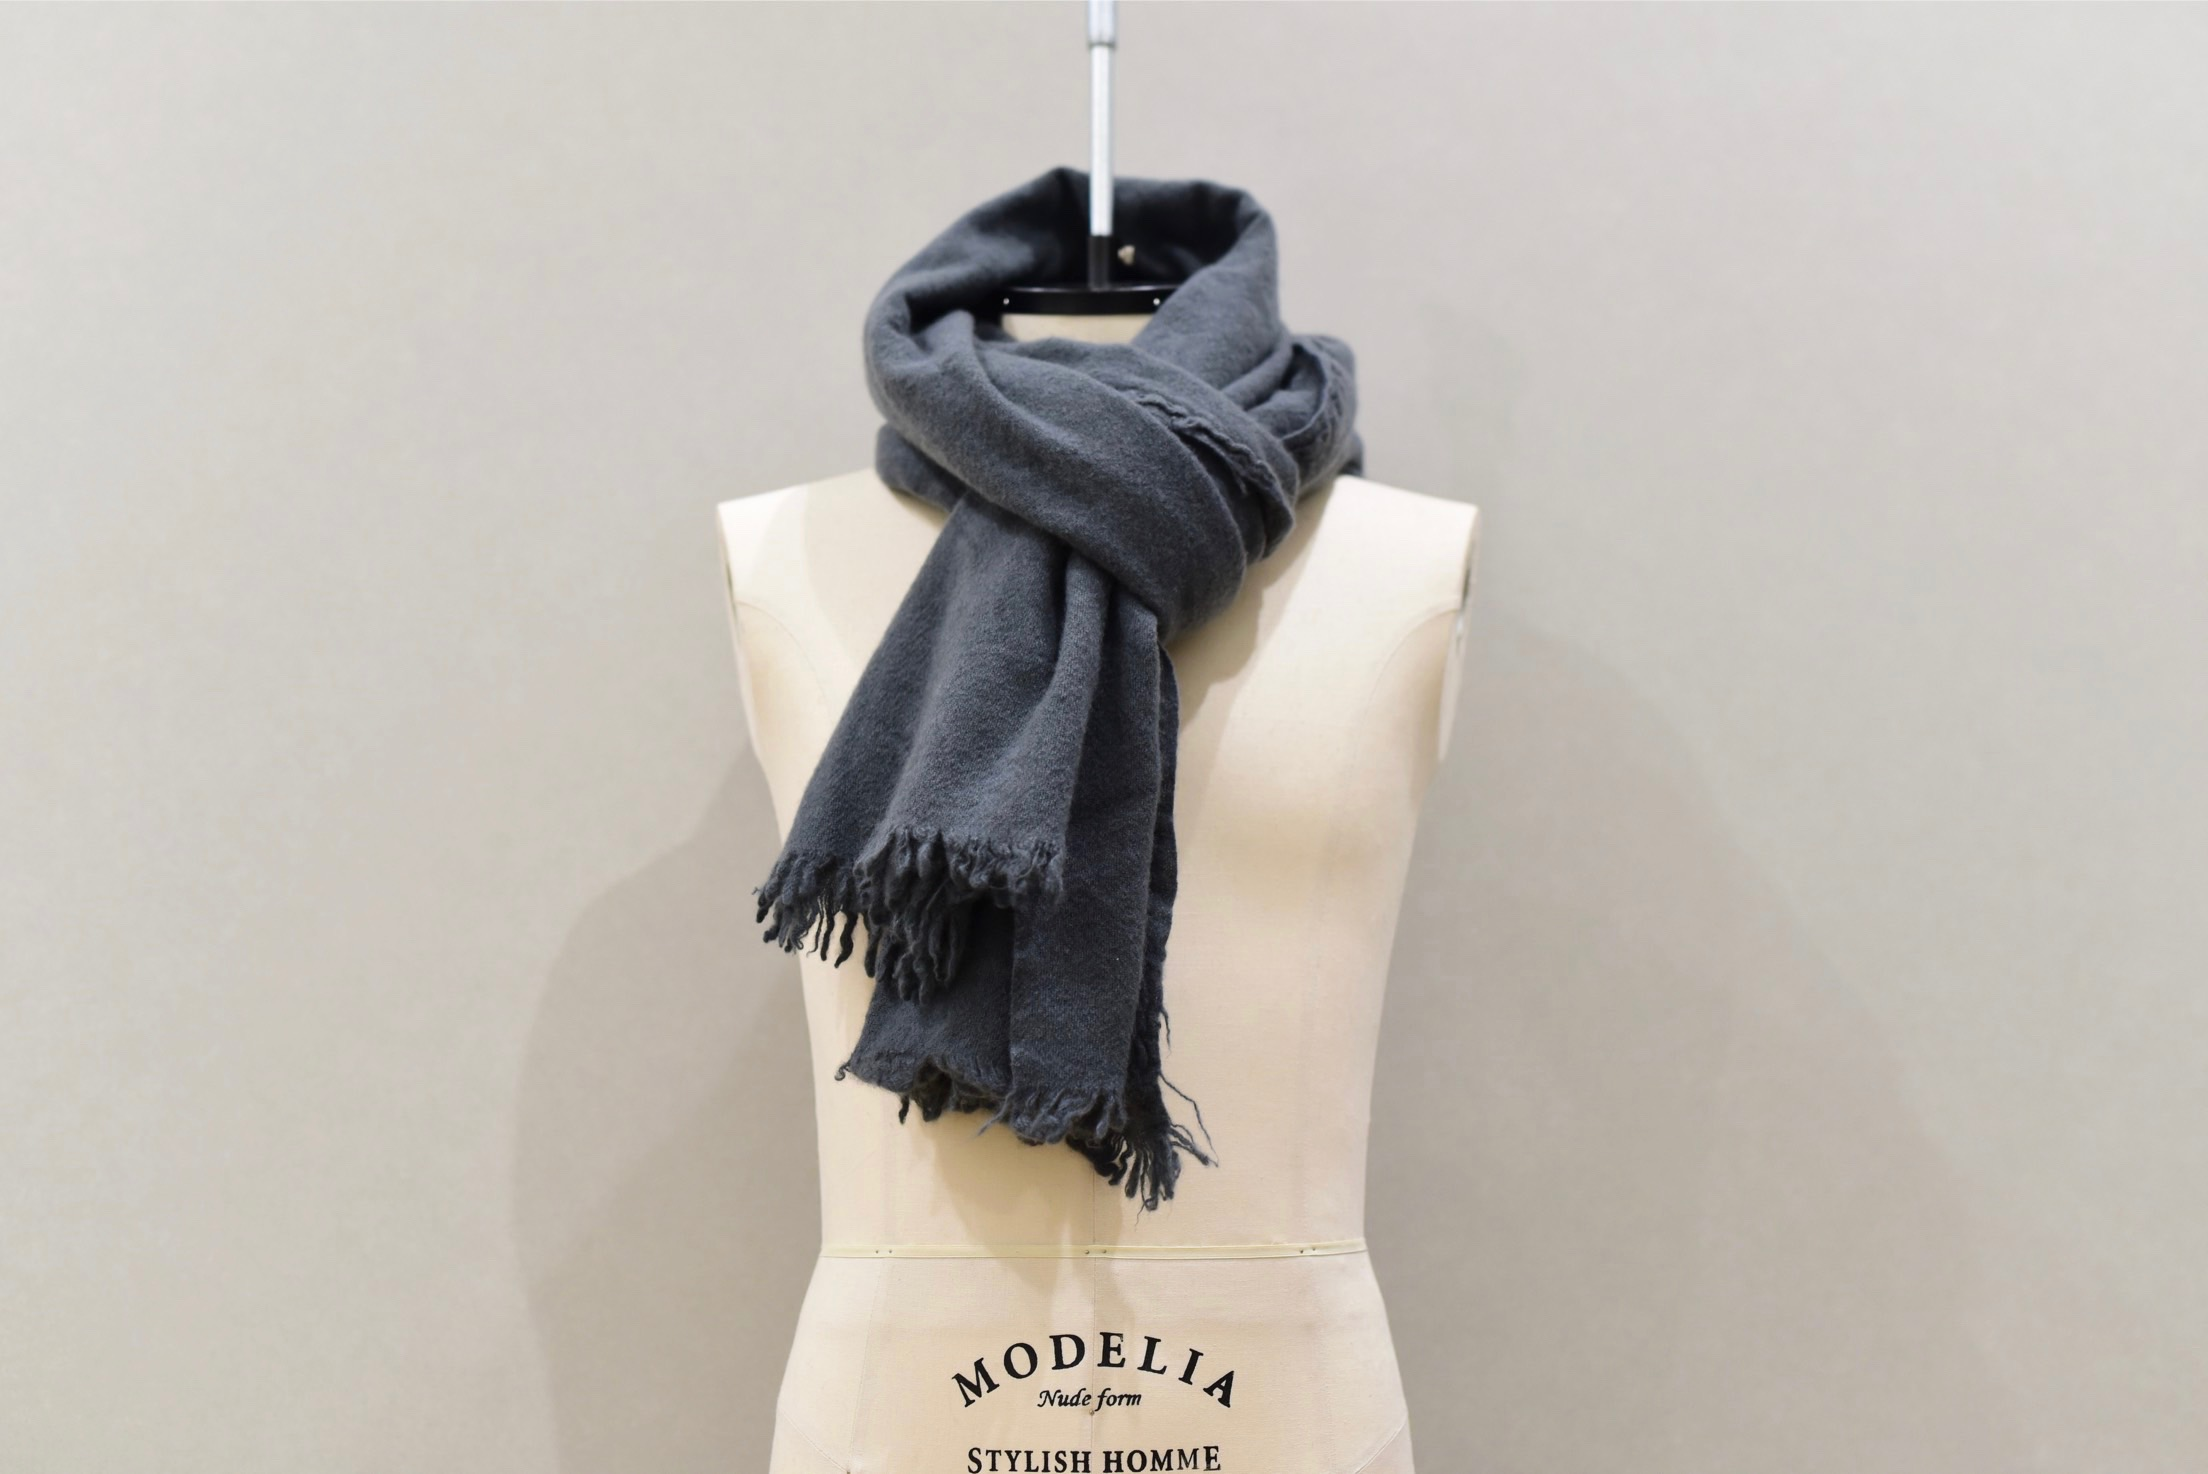 Private 02 04 Slow Cashmere Stole(gray)Vintage